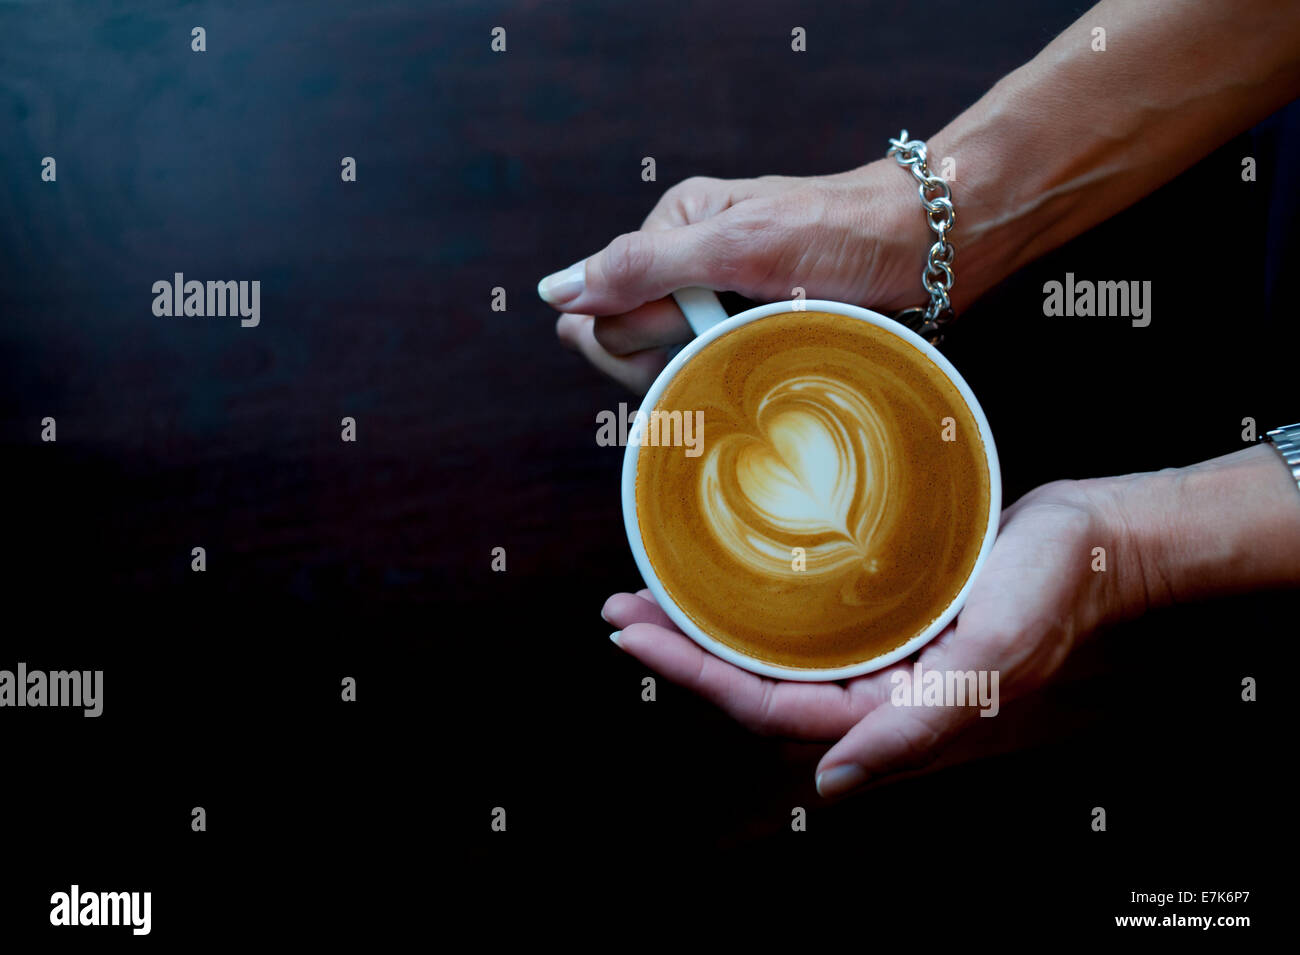 Mature-hands-of-a-woman-holding-a-coffee